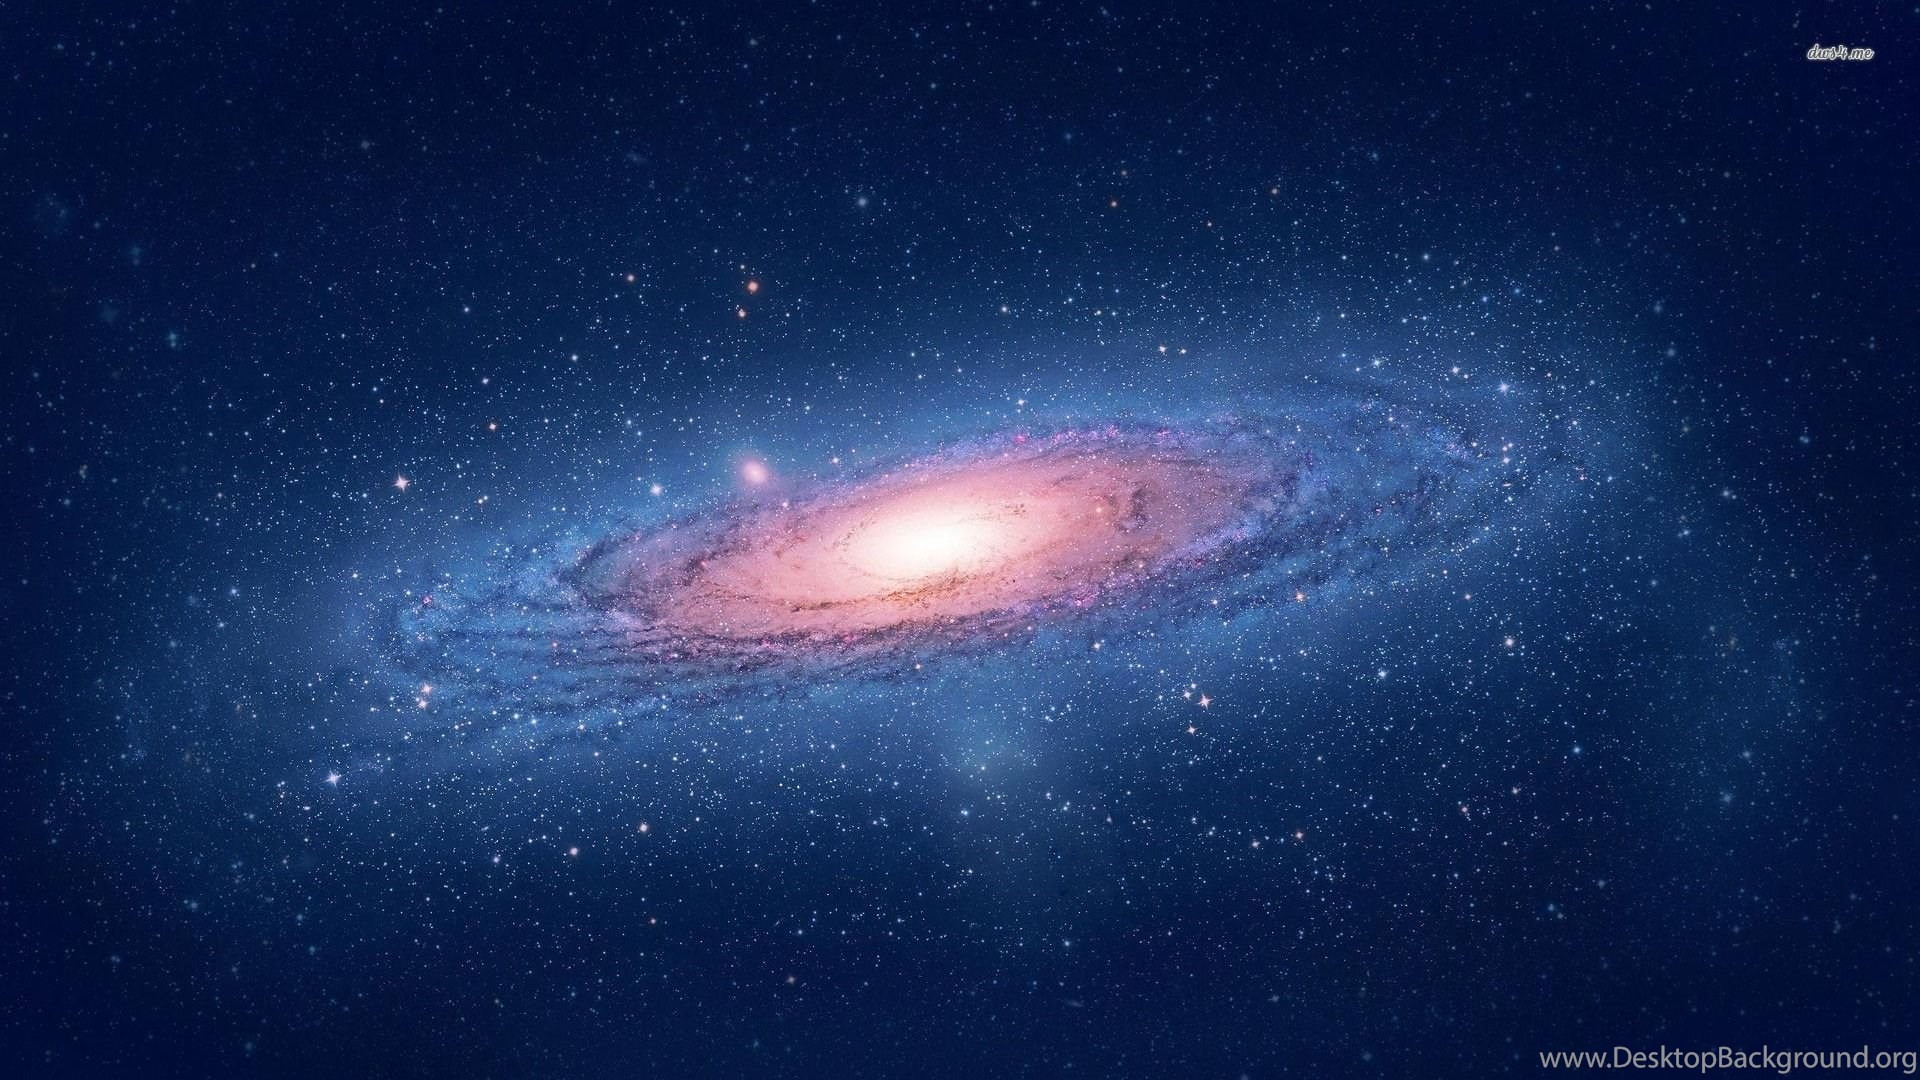 Andromeda galaxy nasa 1920x1080 space wallpapers nasa - Nasa space wallpaper ...